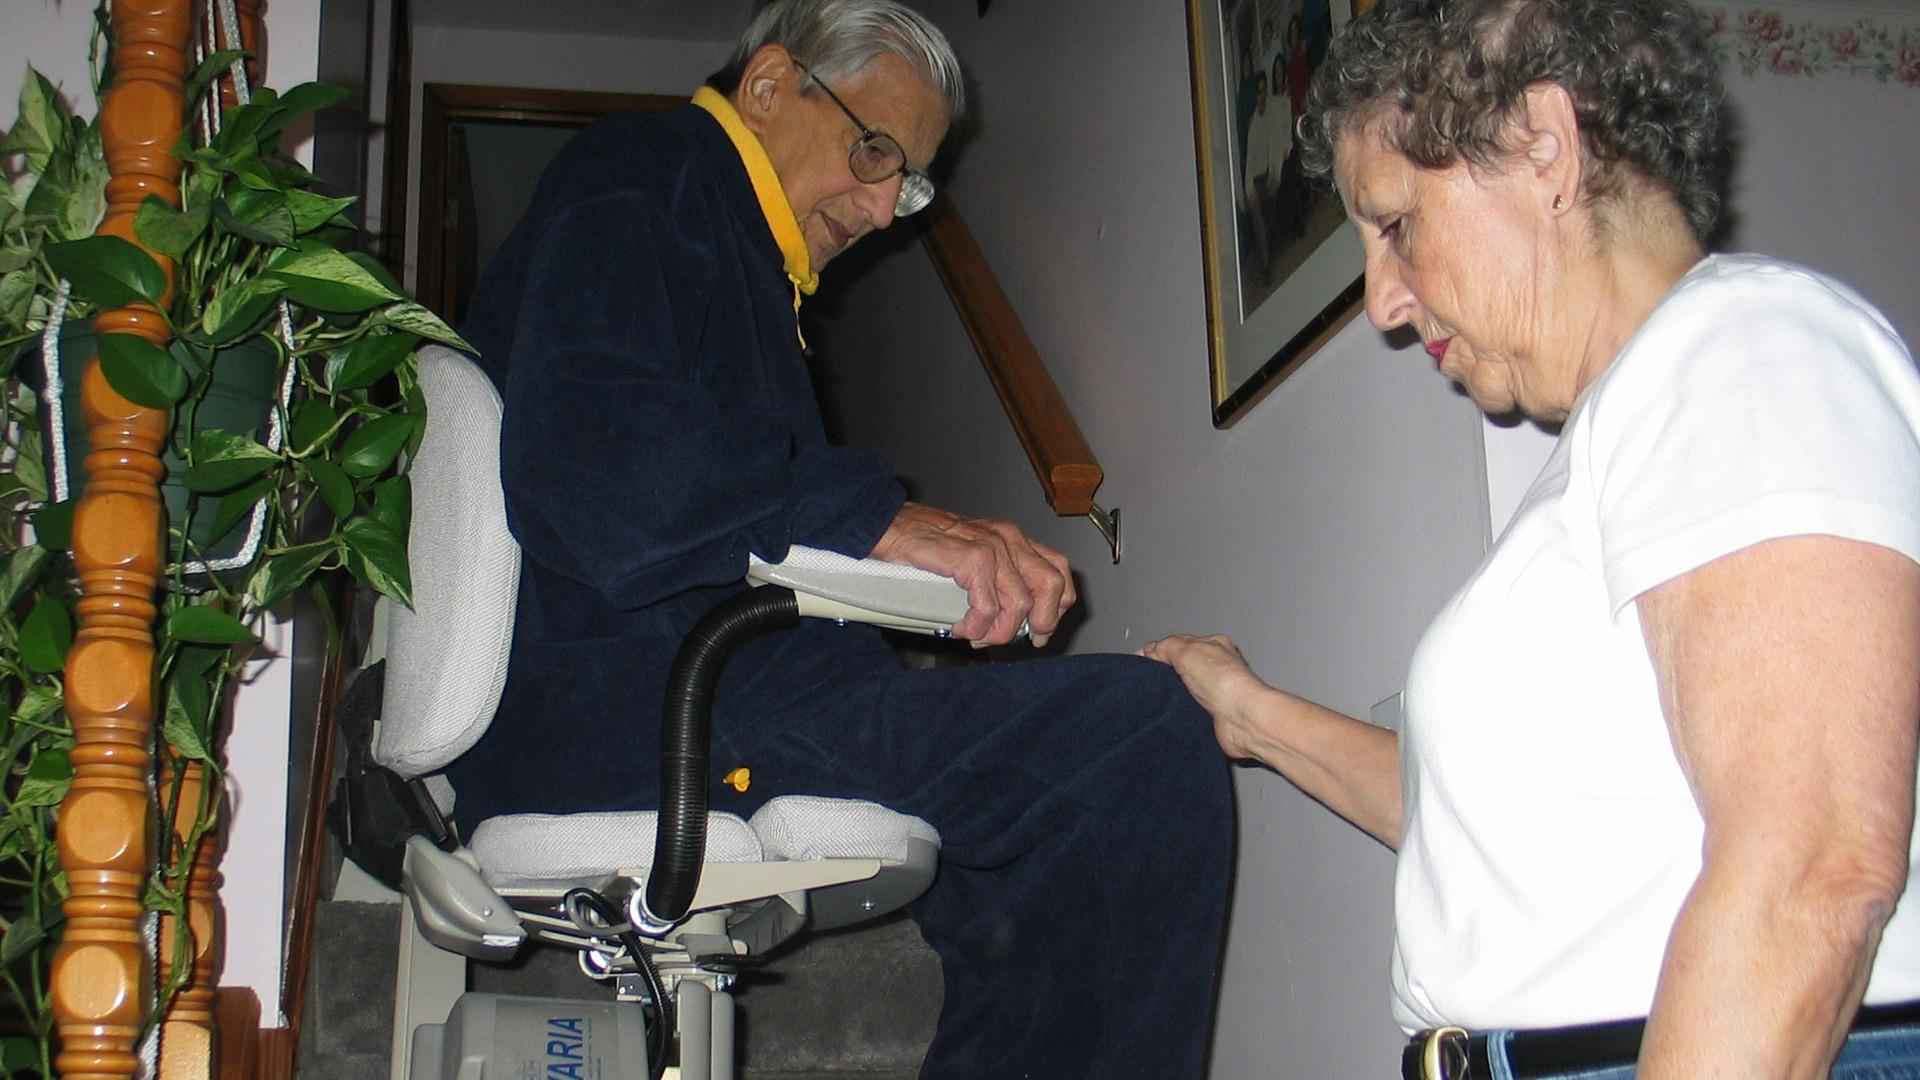 Eldery couple installed a lift to help them get upstairs